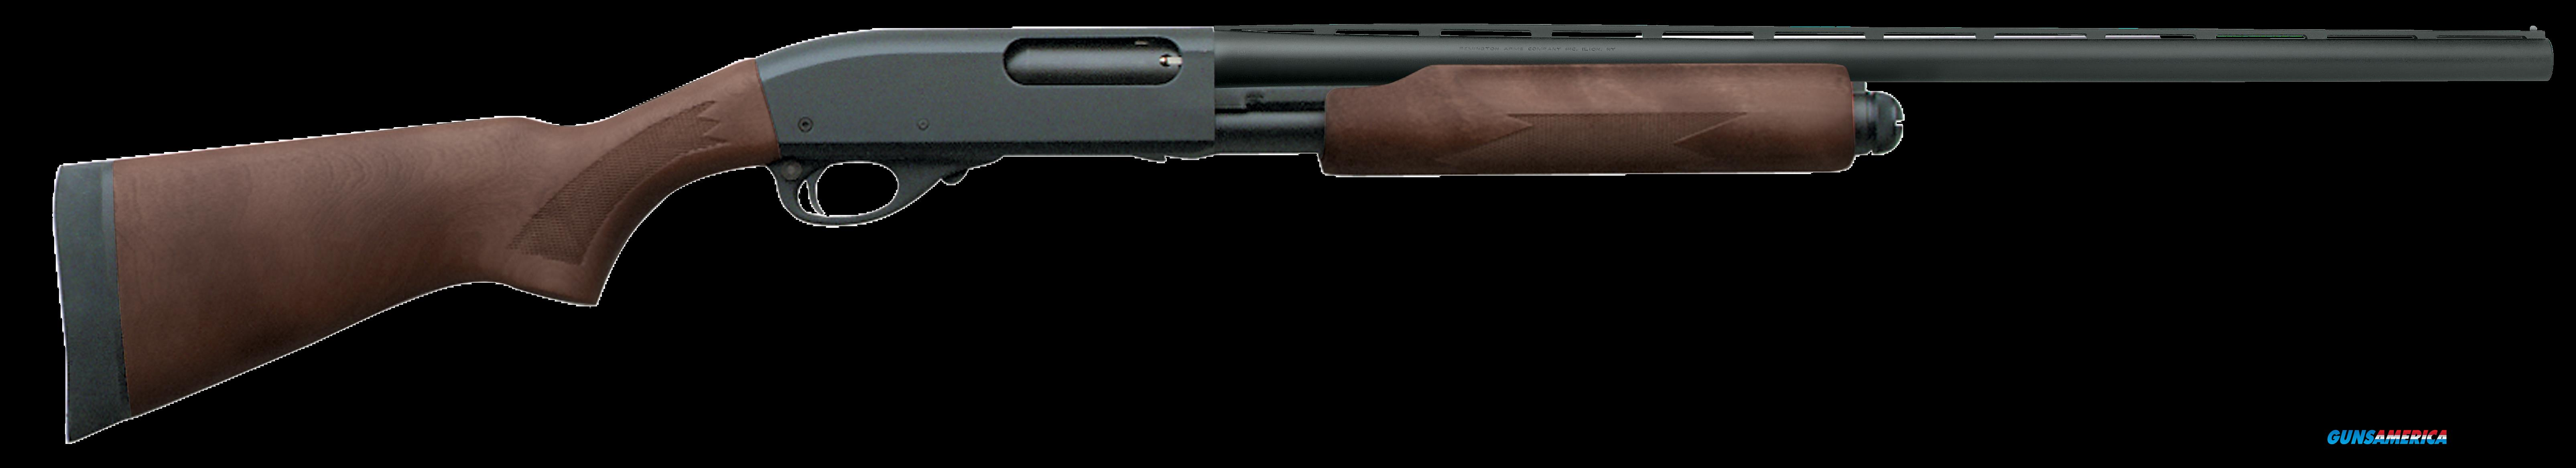 "Remington Firearms 25100 870 Express Super Magnum Pump 12 Gauge 28"" 3.5"" Walnut Stk Black Rcvr  Guns > Shotguns > R Misc Shotguns"